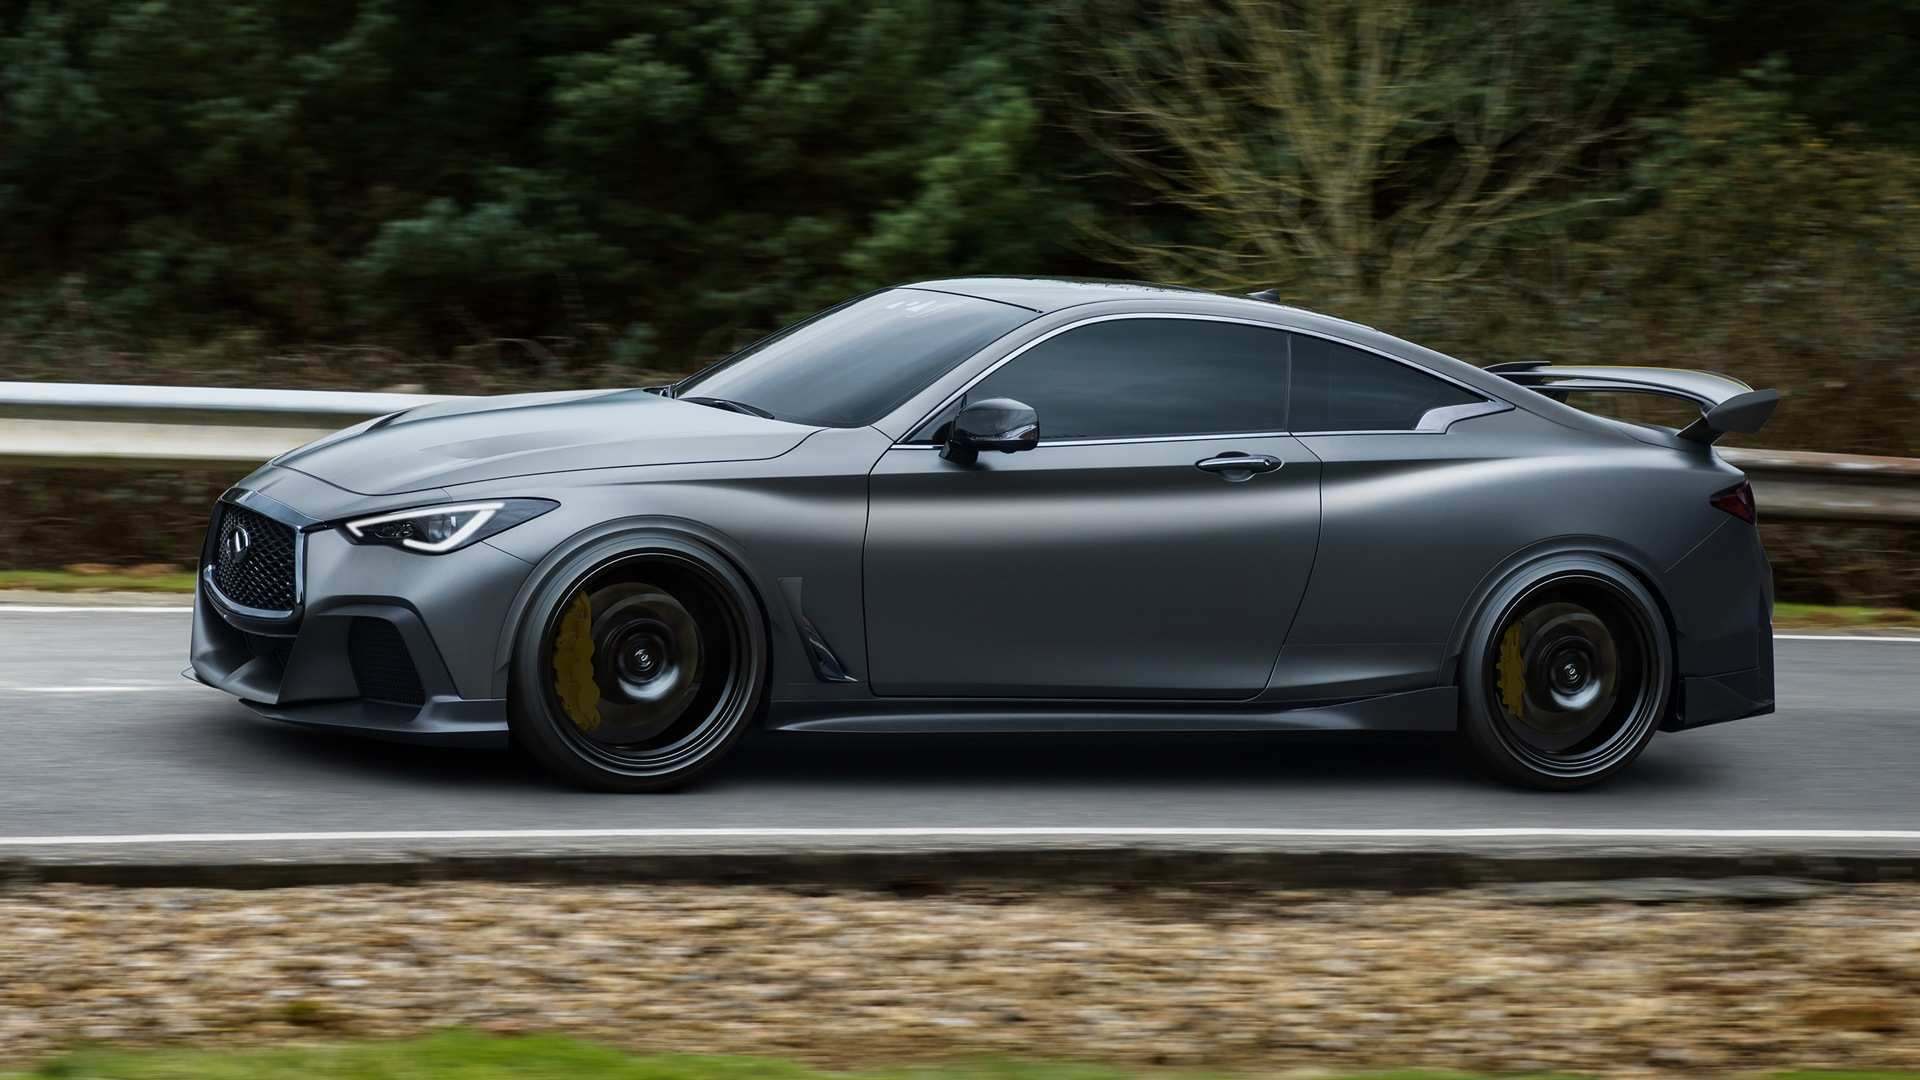 87 New 2020 Infiniti Q60 Project Black S New Review for 2020 Infiniti Q60 Project Black S